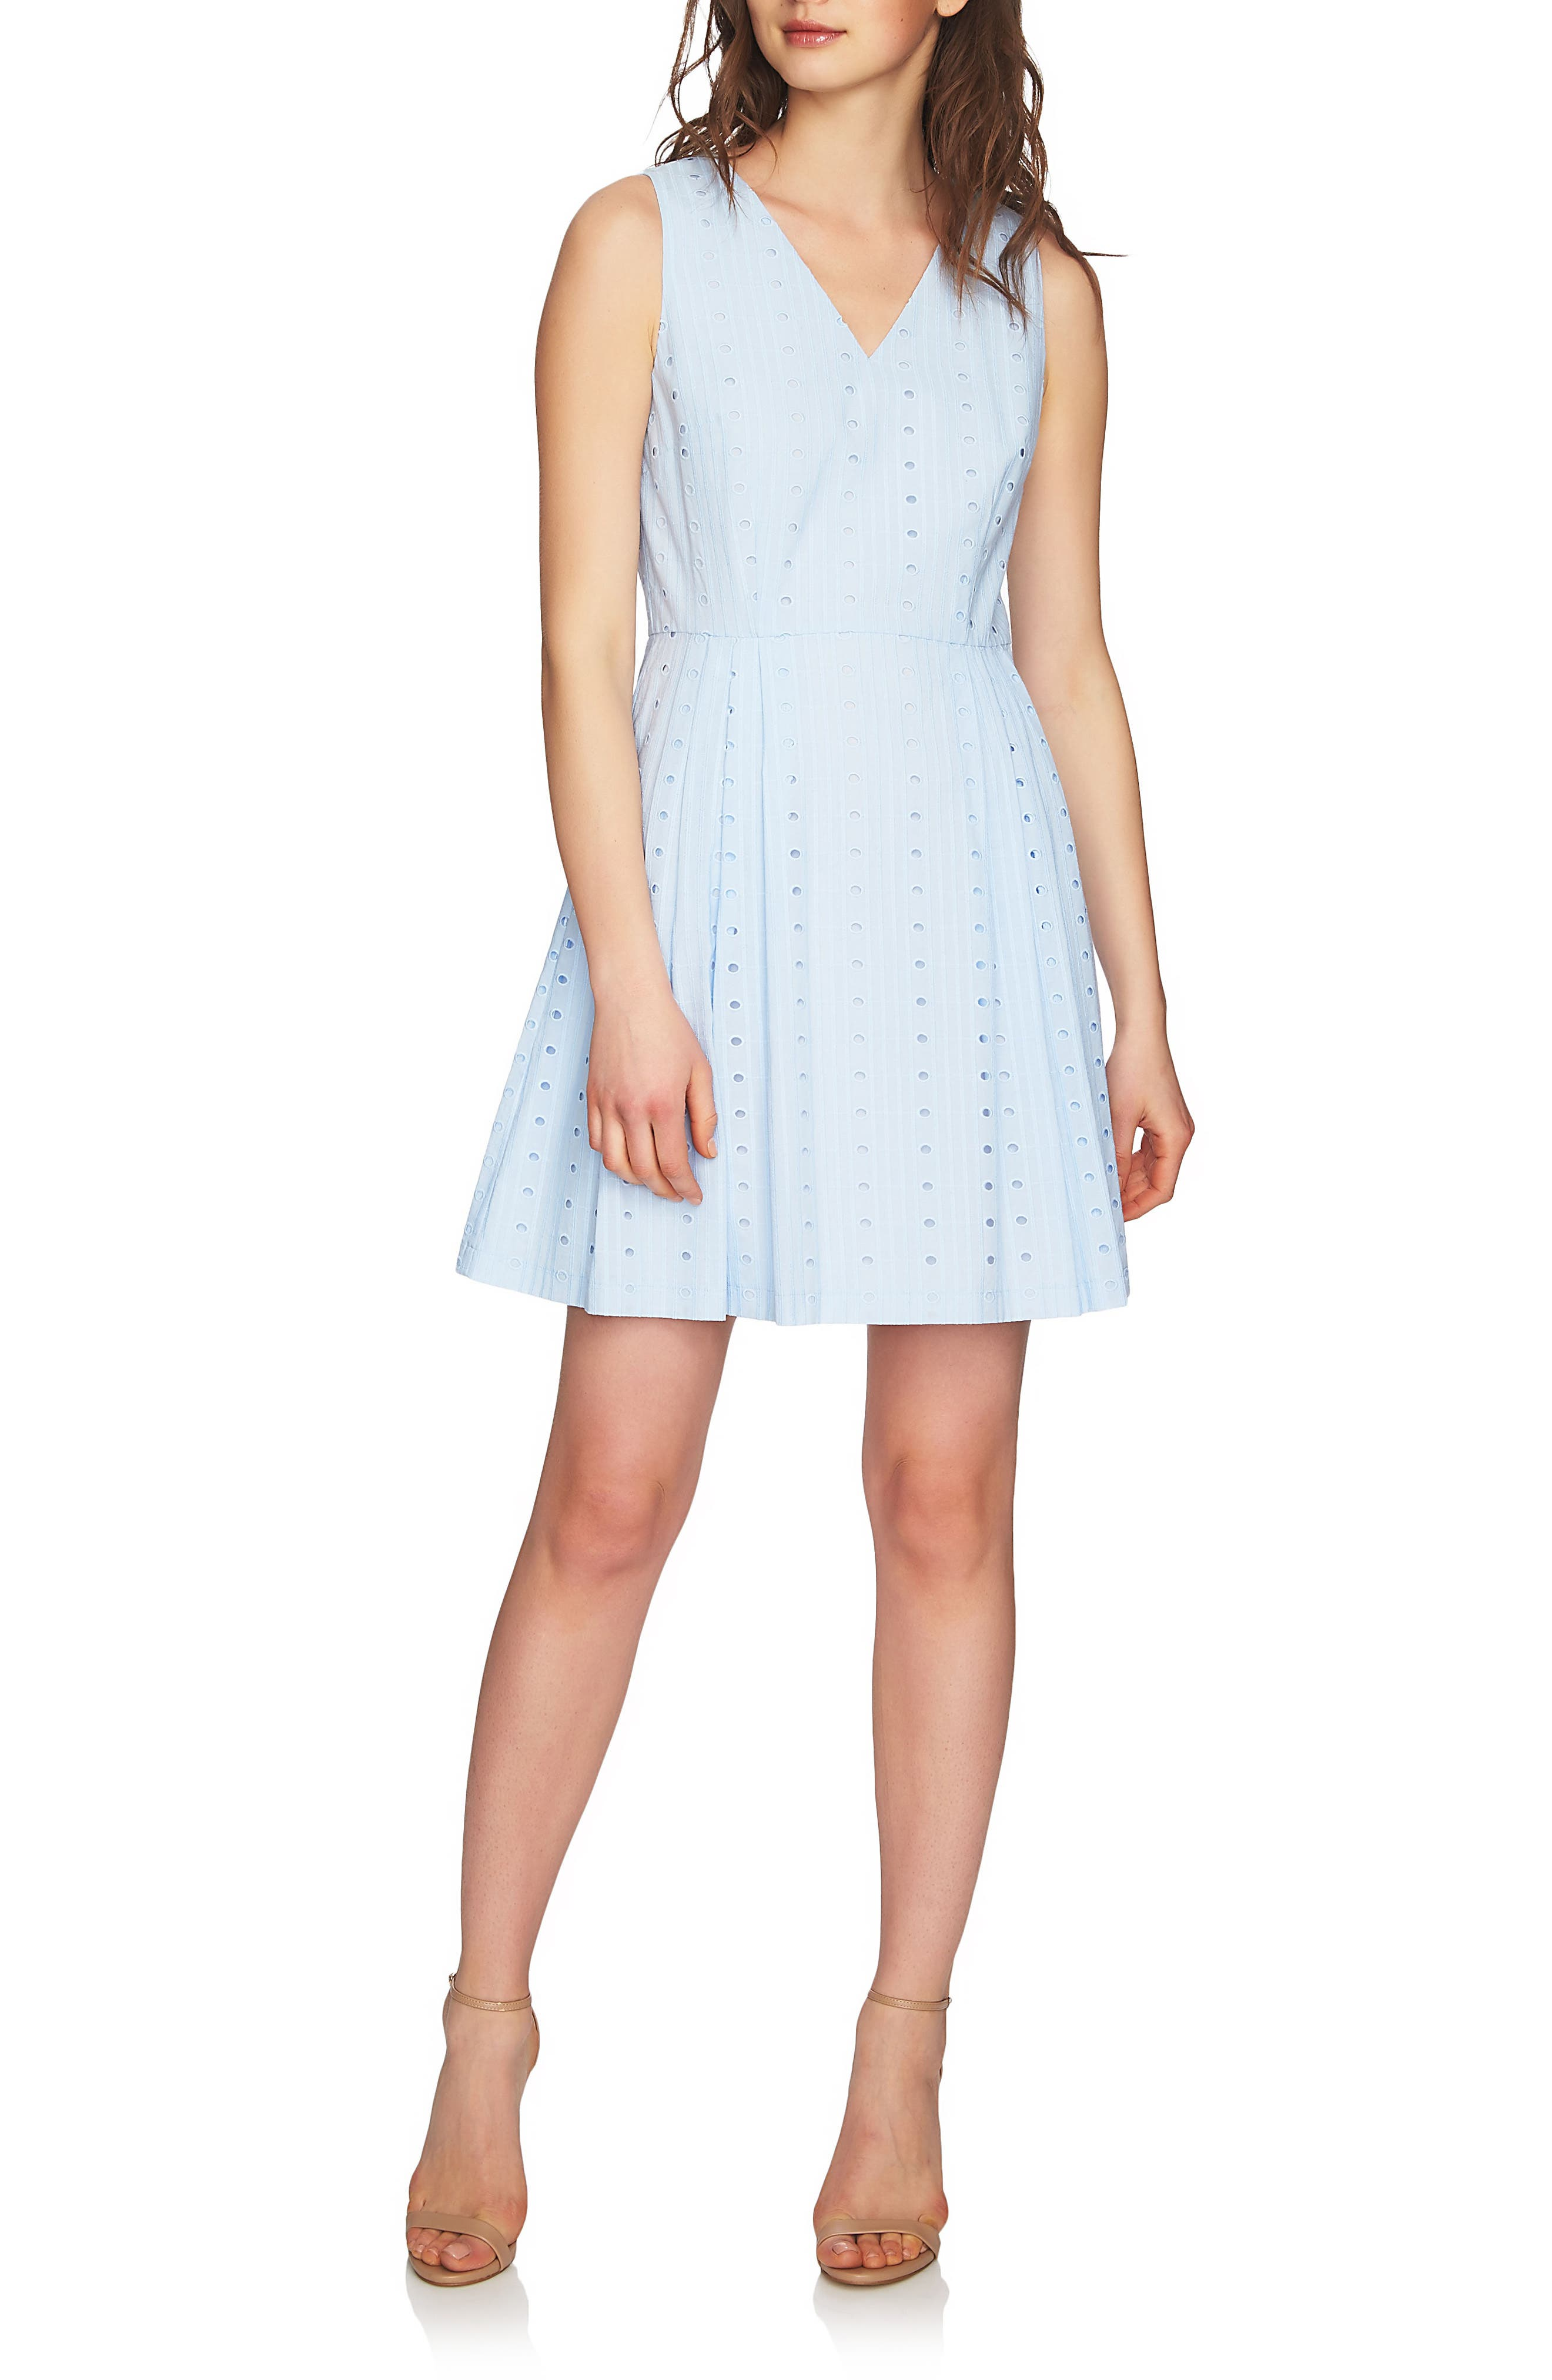 Clairborne Eyelet Fit & Flare Dress,                             Main thumbnail 1, color,                             Bluebird